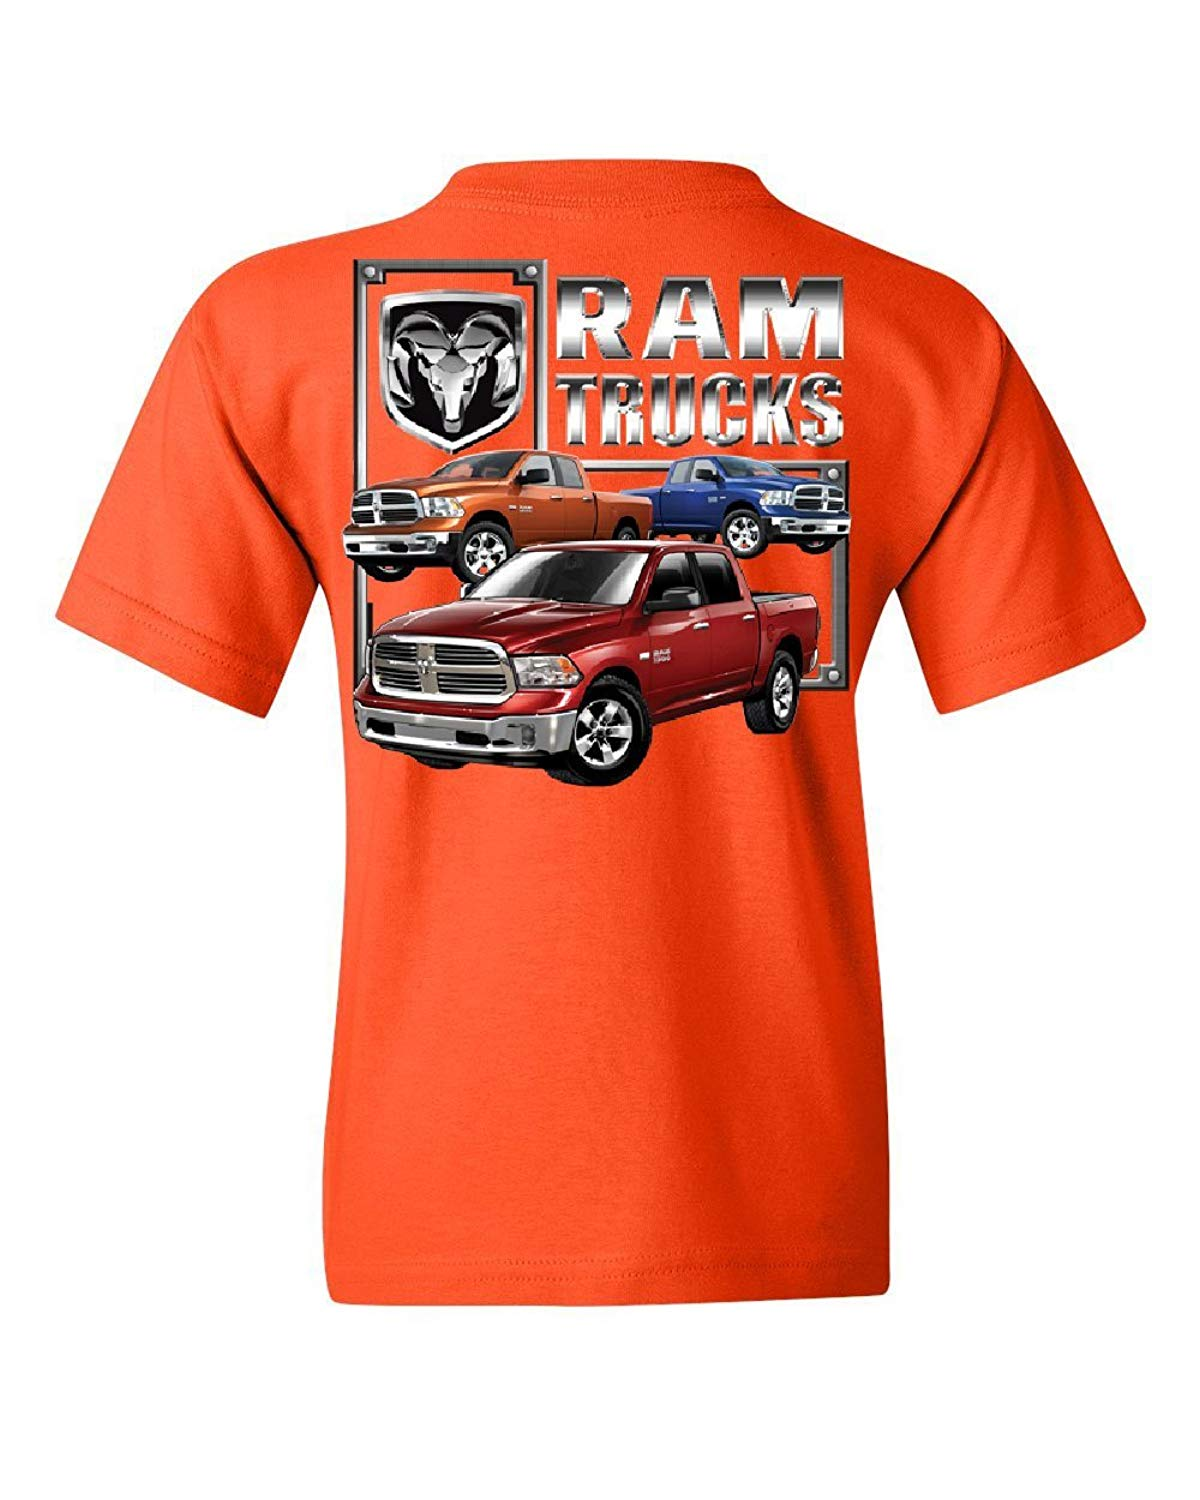 Dodge Ram Truck Youth T-Shirt Heavy Duty V8 Pickup Truck Kids Tee